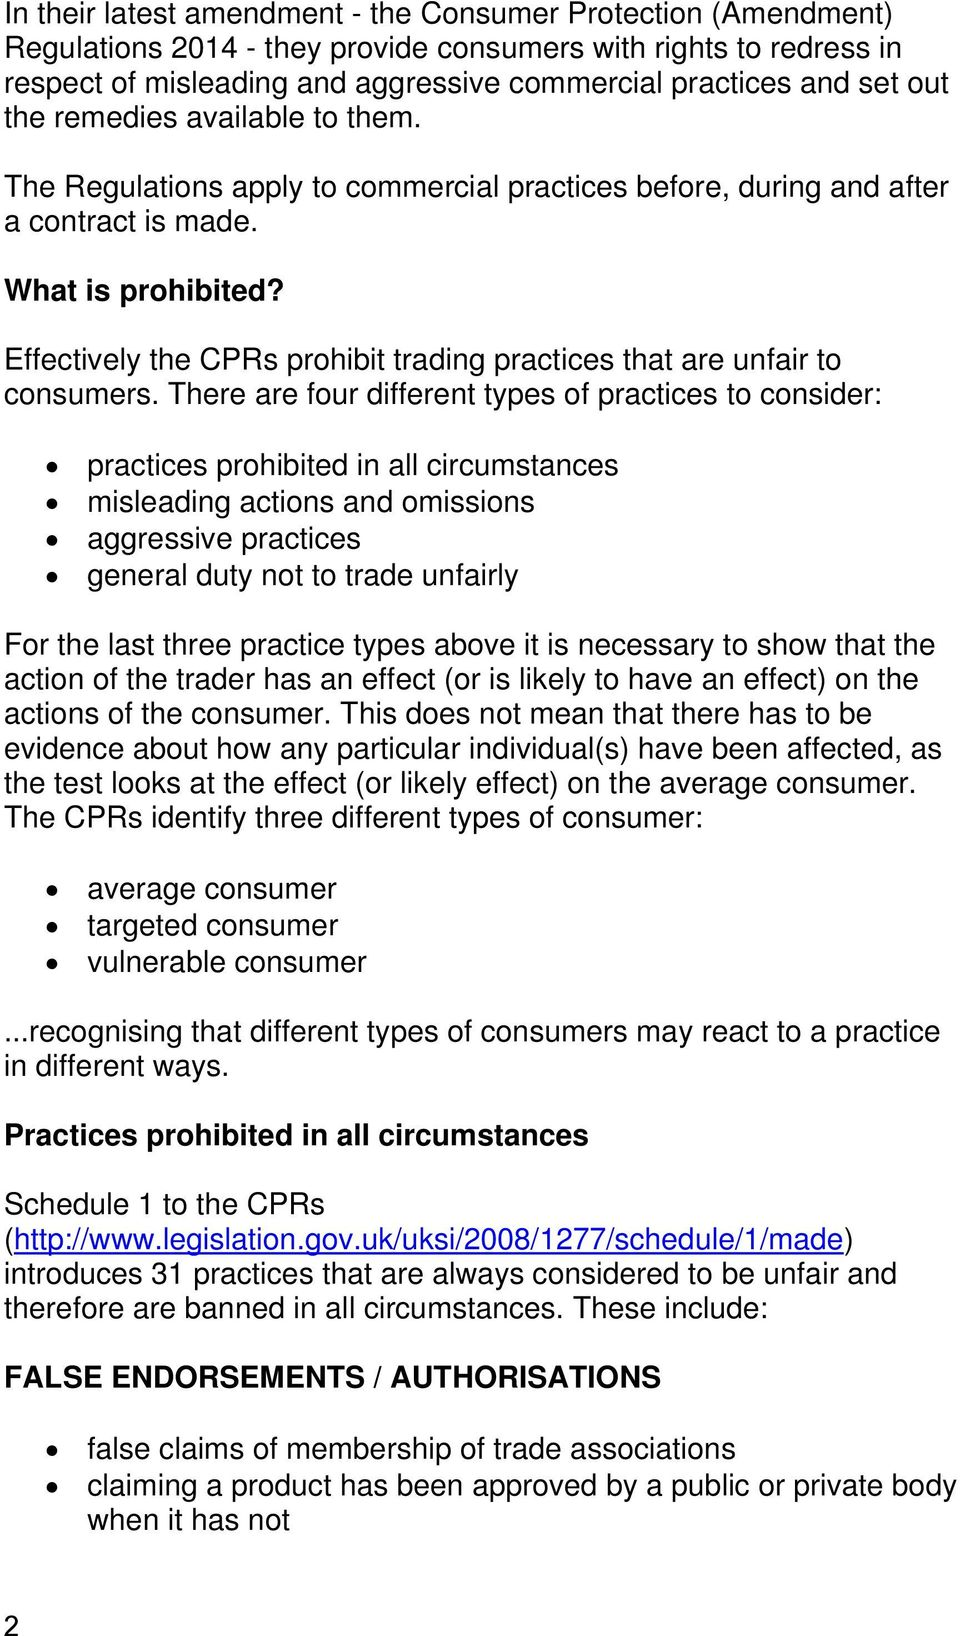 Consumer protection from unfair trading - PDF